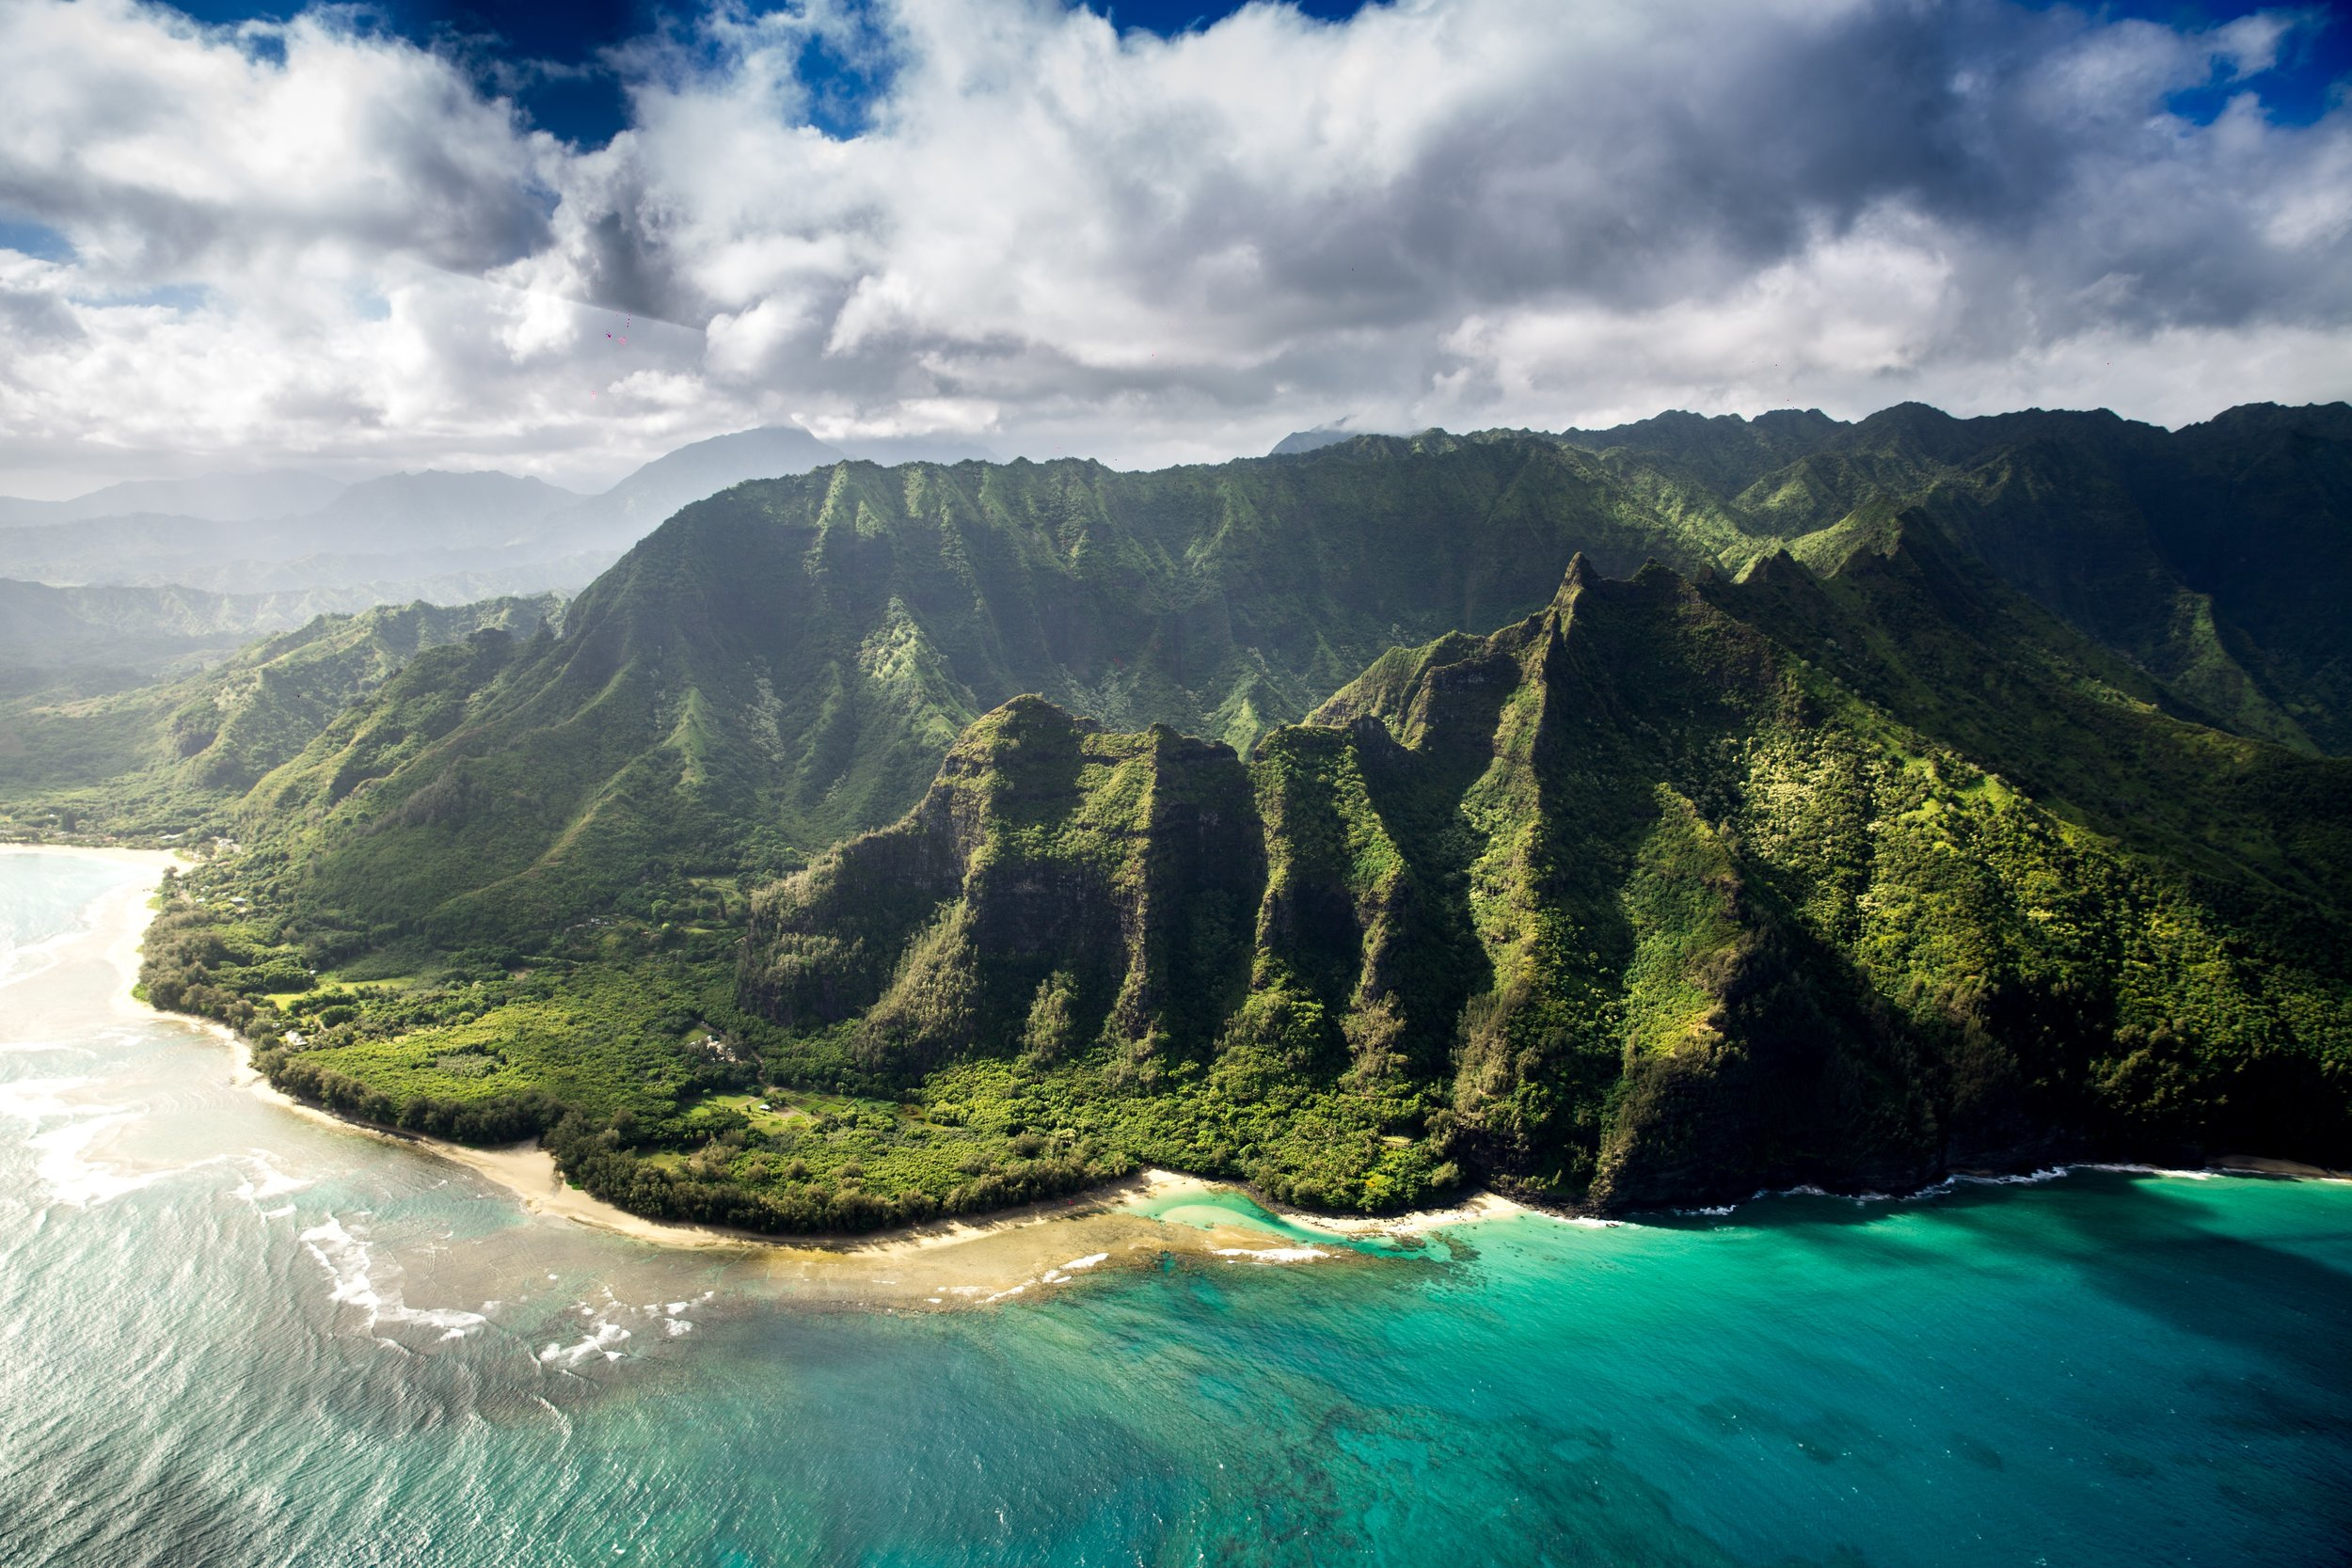 Hawaii - An incredible island with great things.